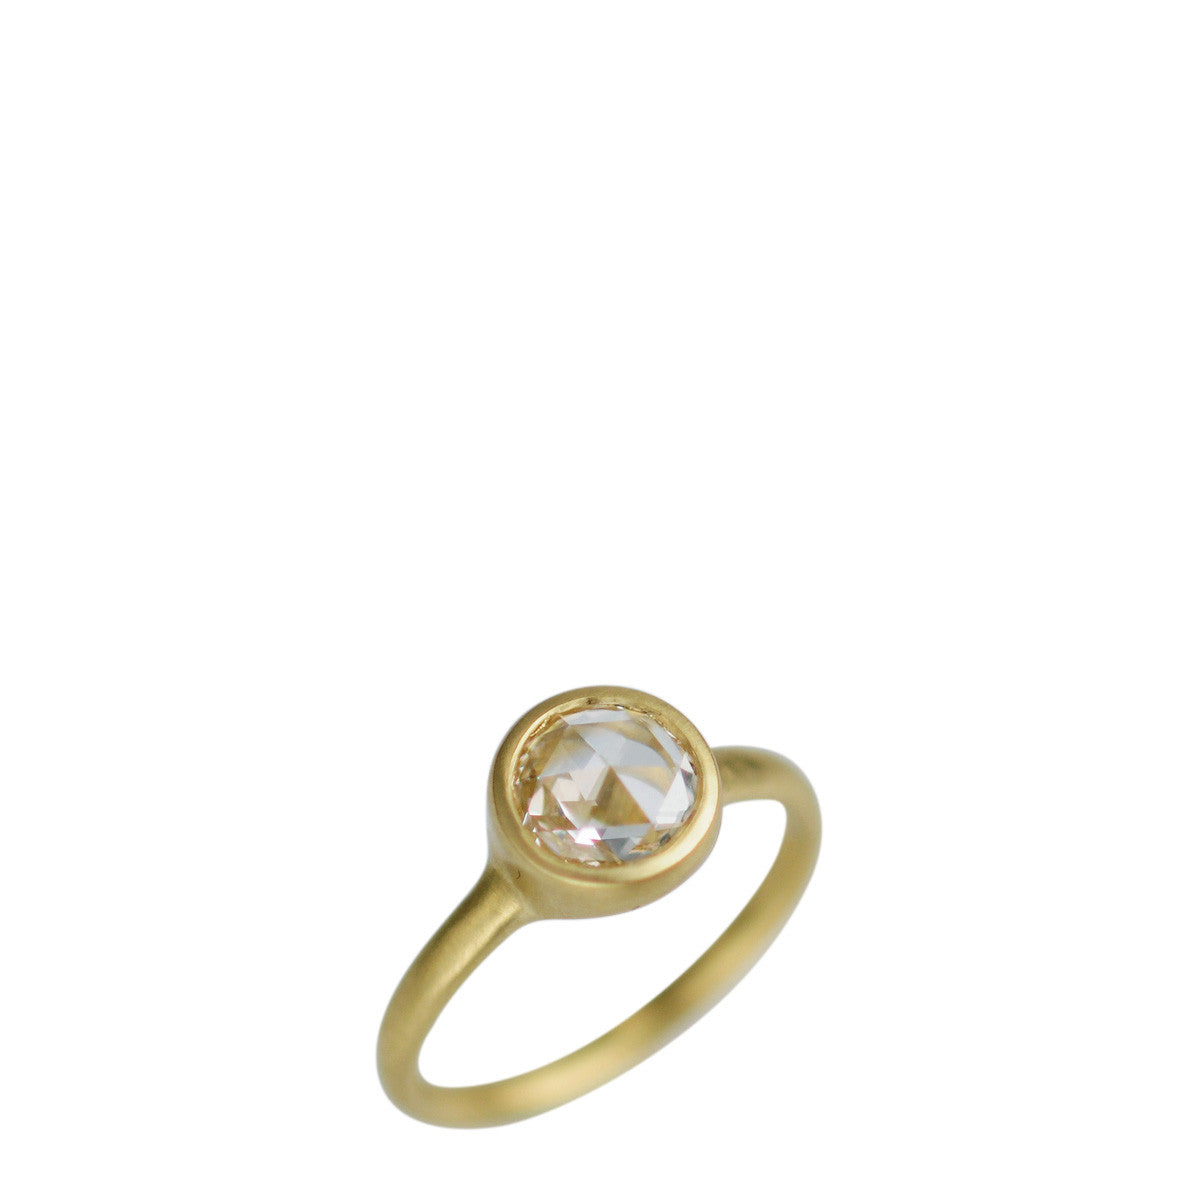 18K Gold 1 Carat Rose Cut Diamond Ring